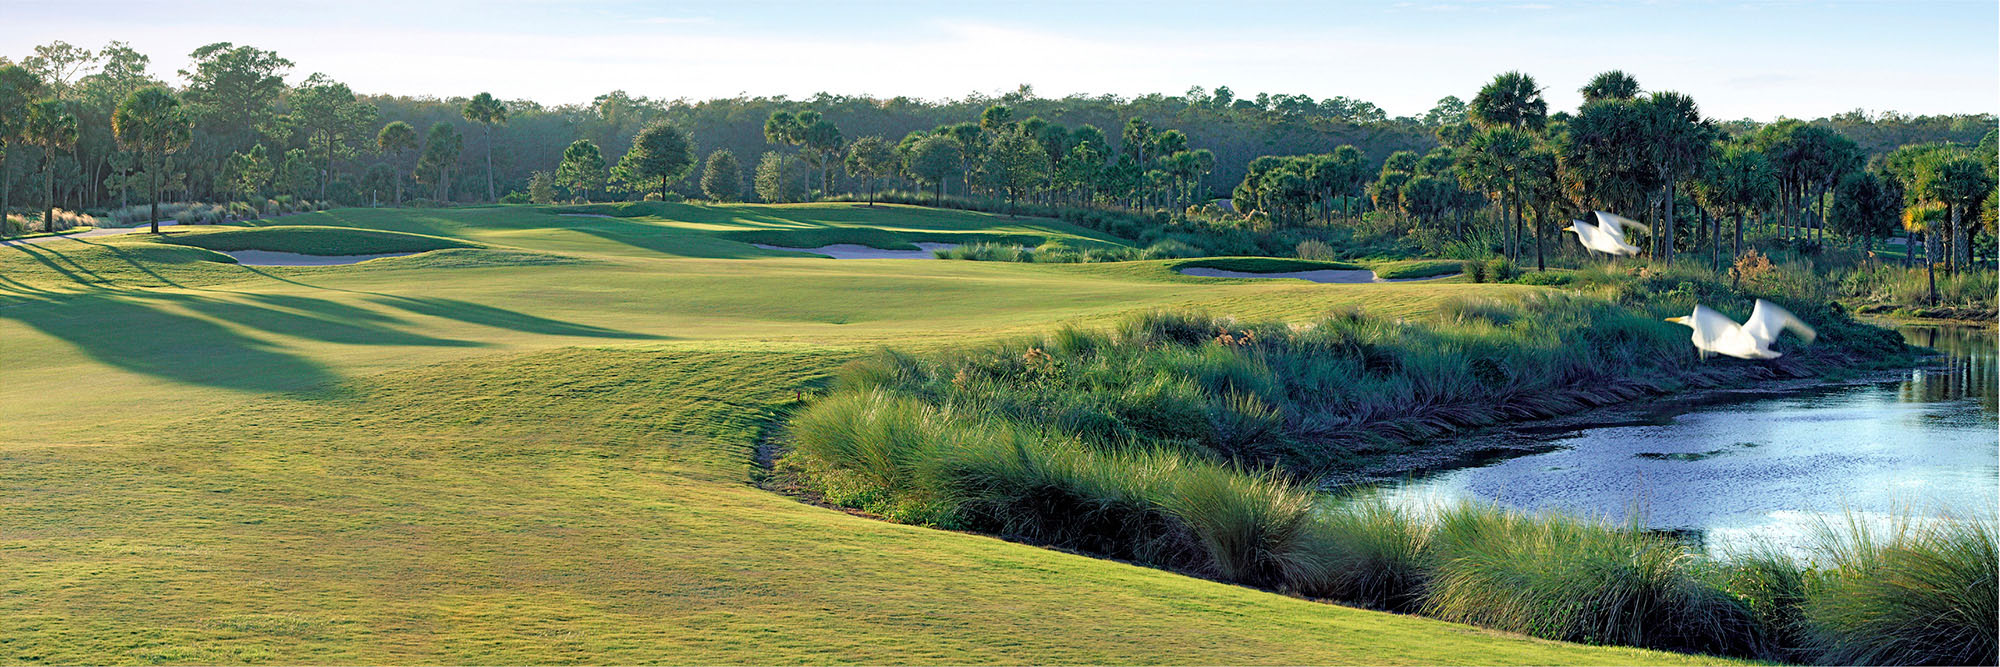 Golf Course Image - Twin Eagles No. 13